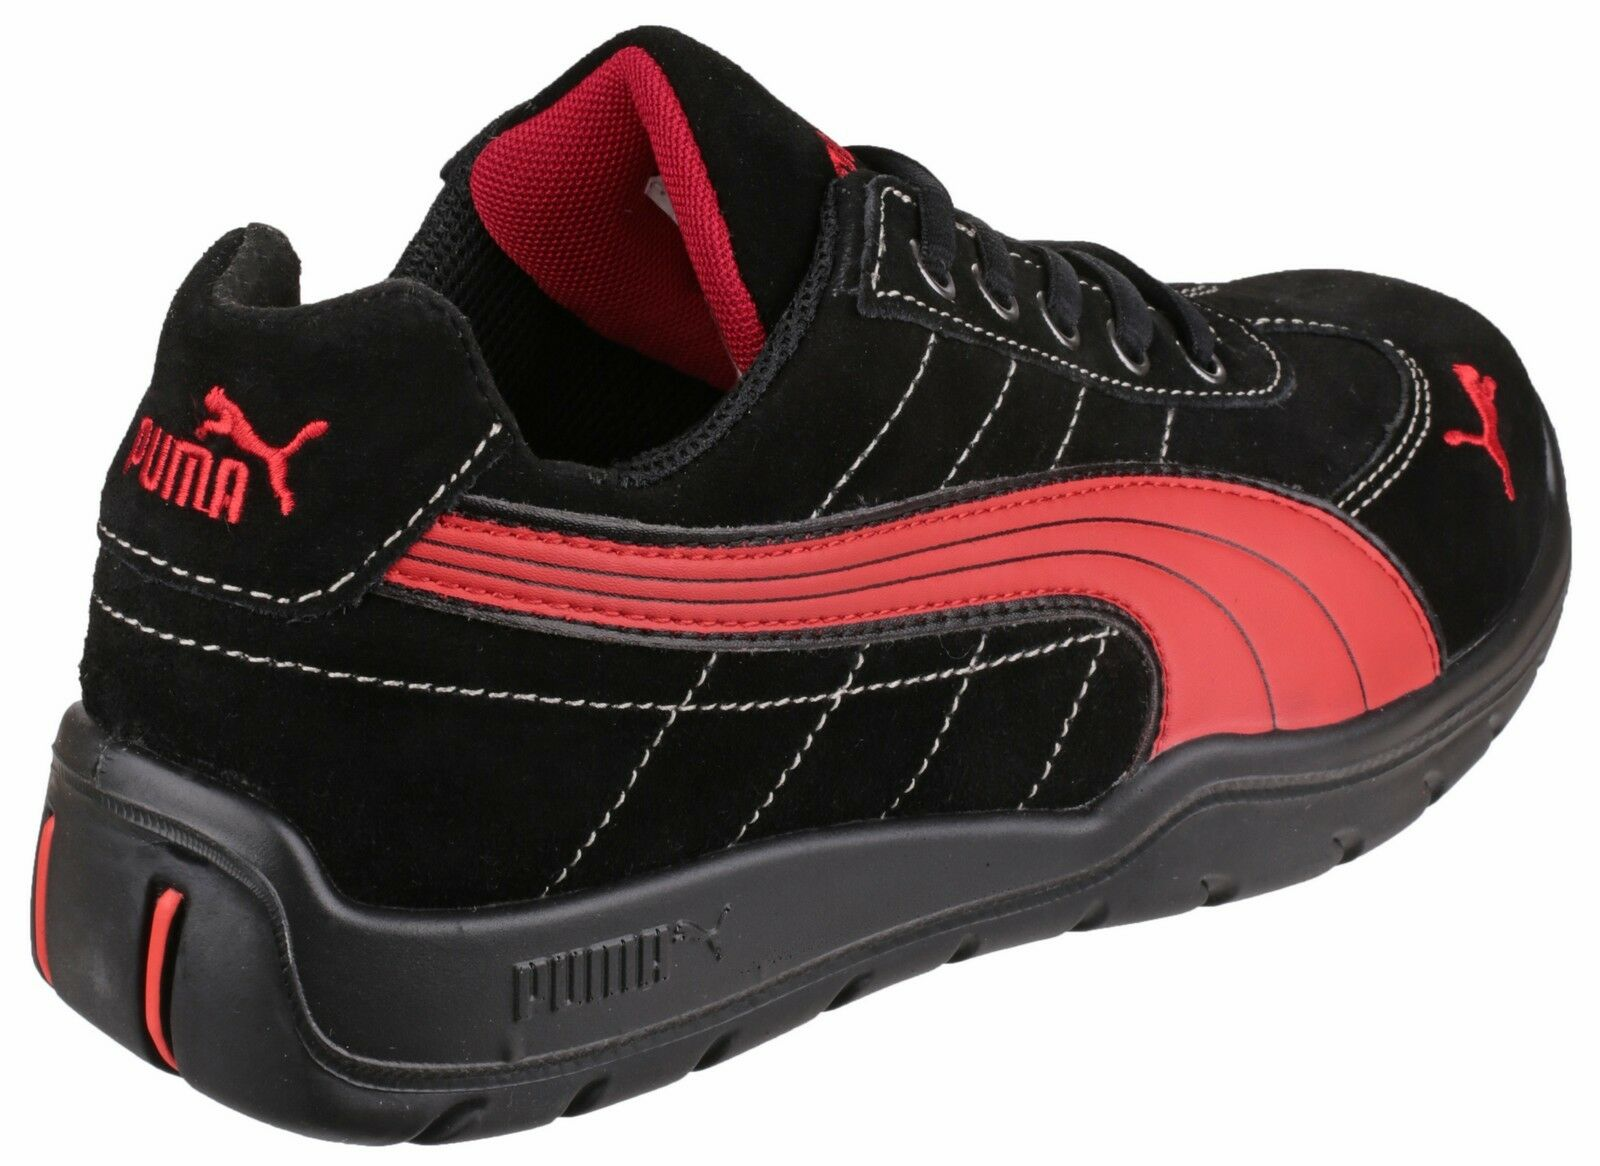 Puma Silverstone Industrial Trainers  Uomo S1 Safety Toe Cap Trainers Industrial Composite Toecap be0125